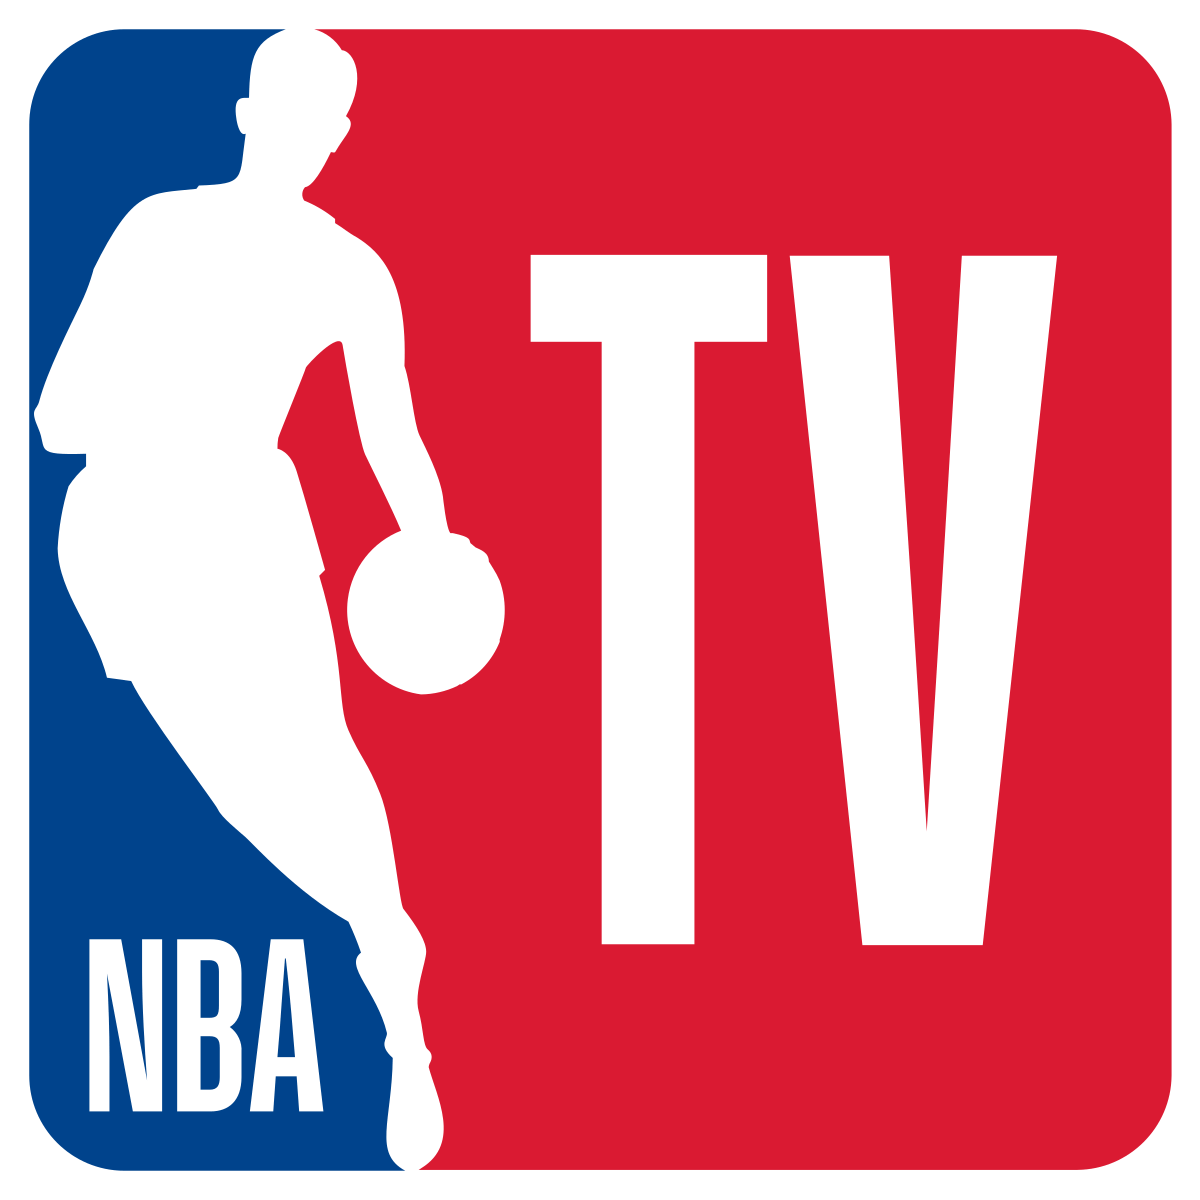 nba-tv-logo-8-bit.png